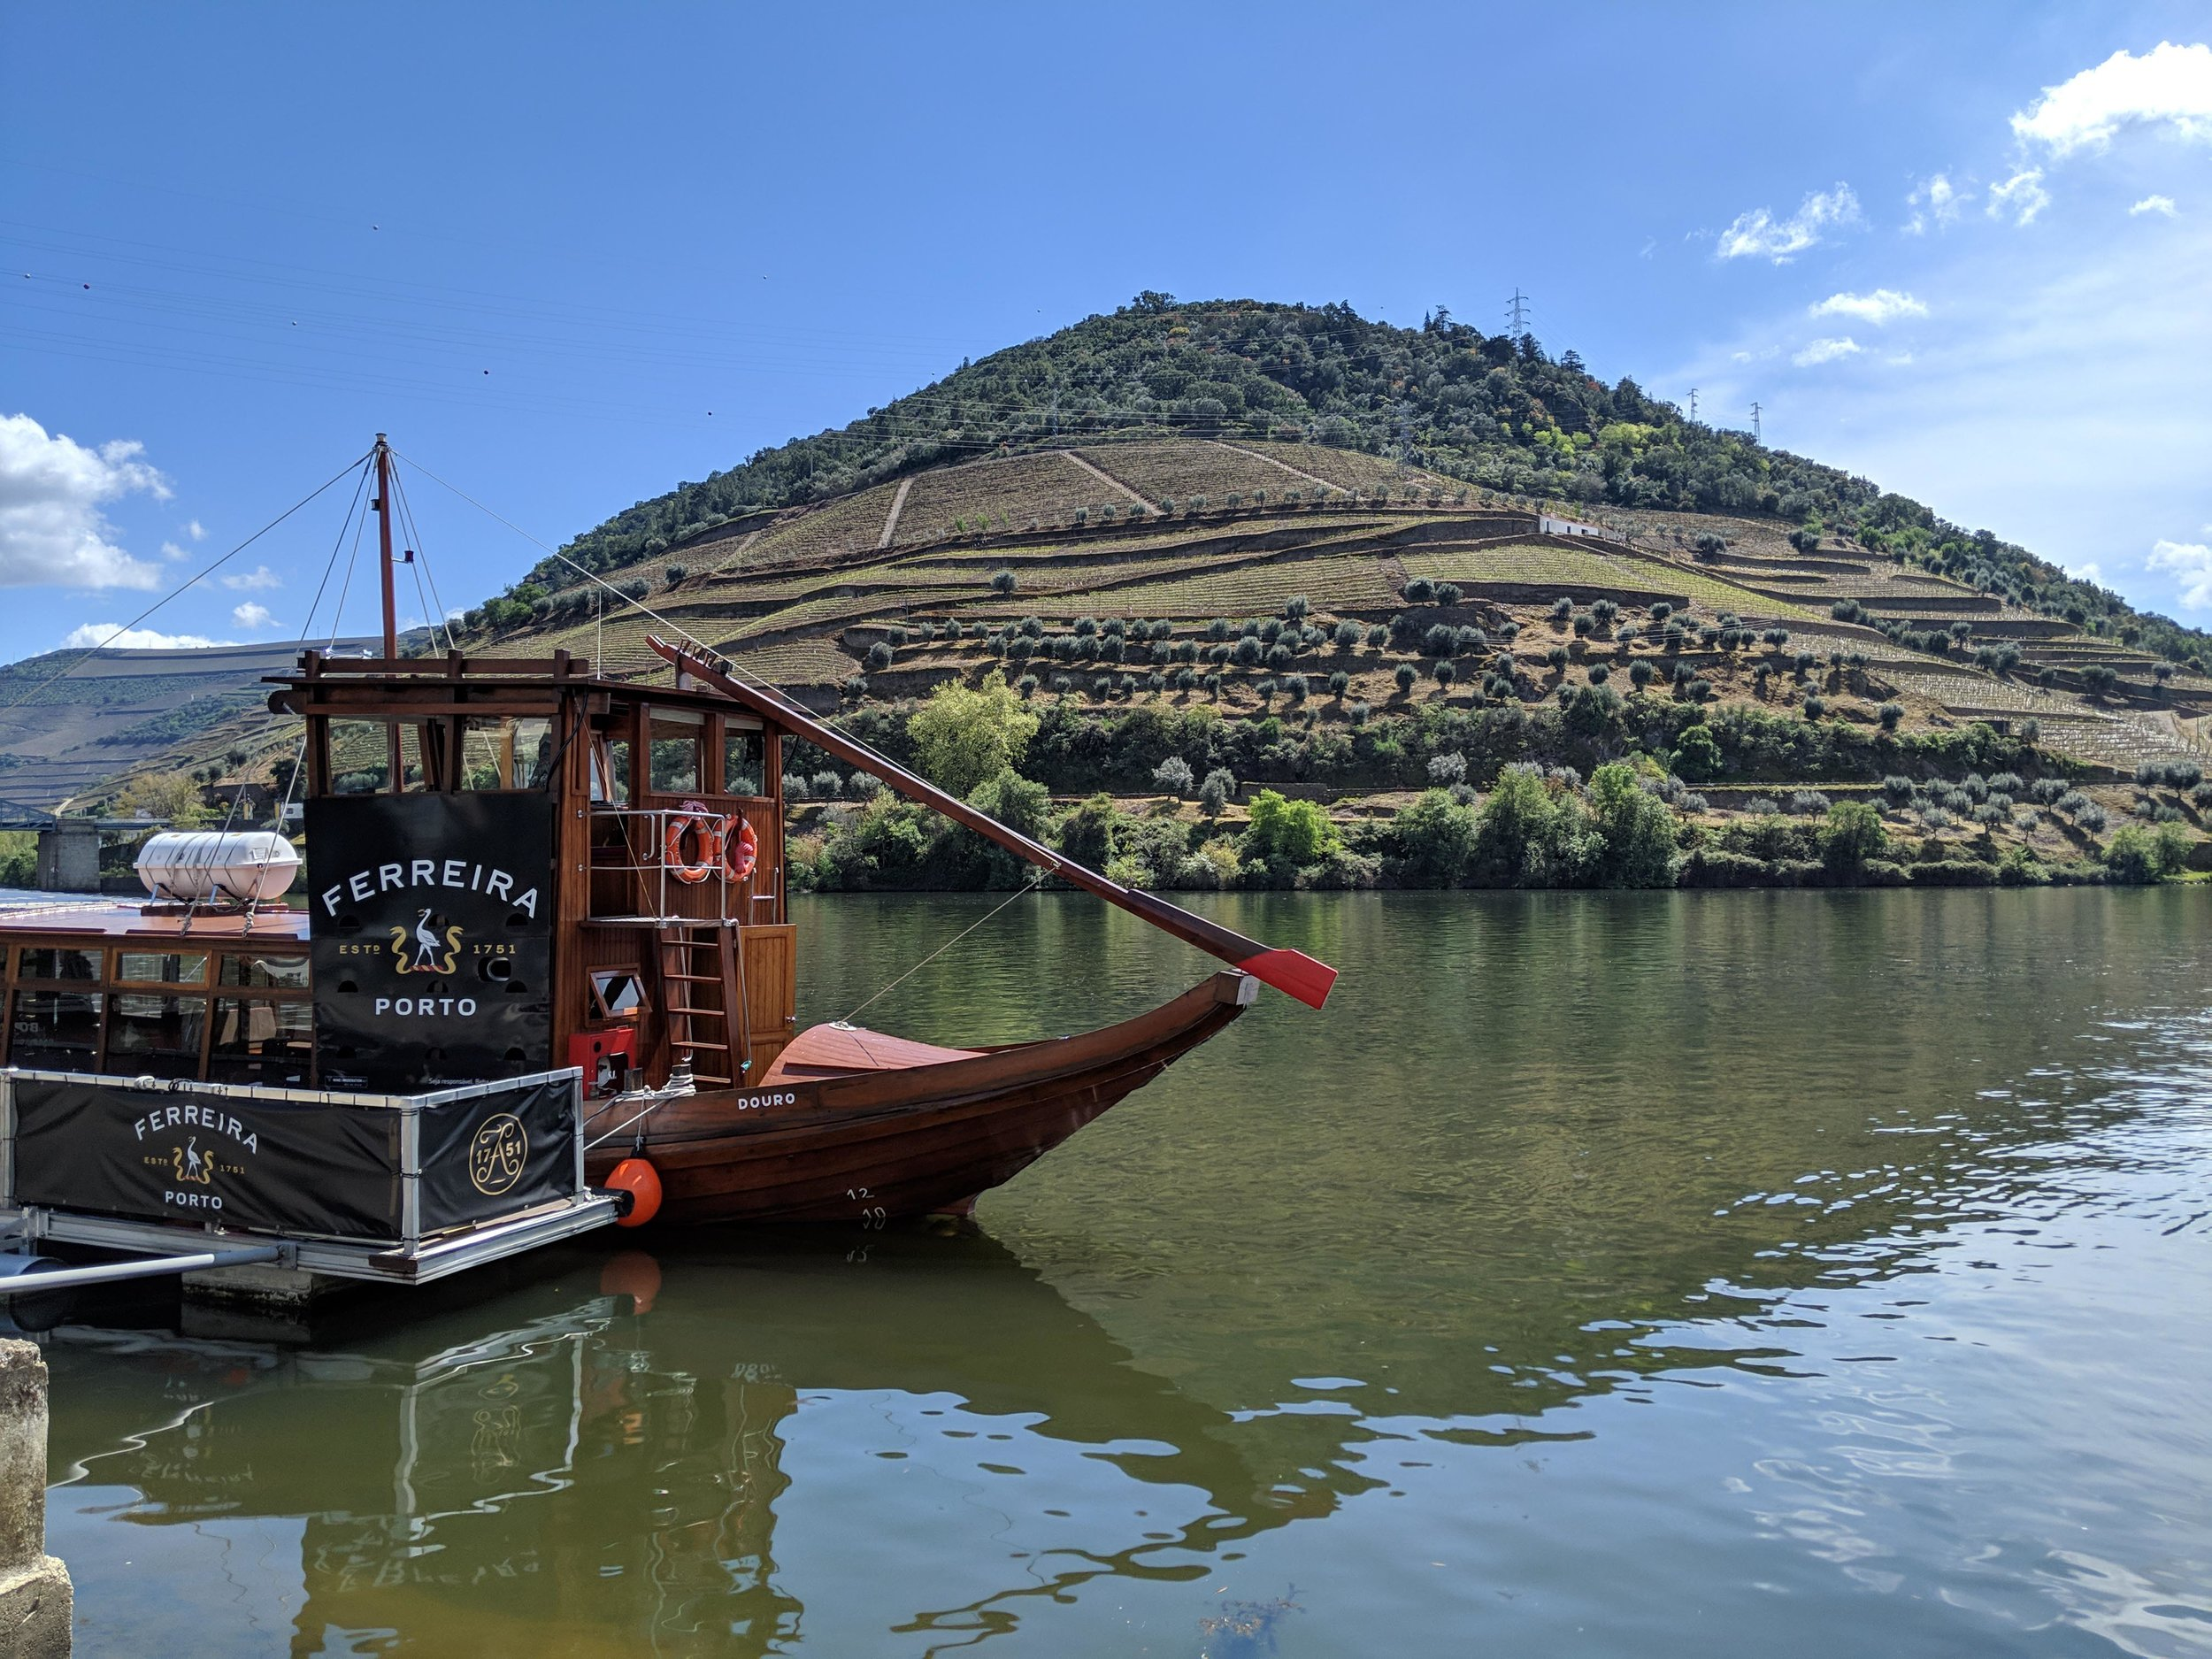 Our Rabelo: Our transport for the lovely river trip